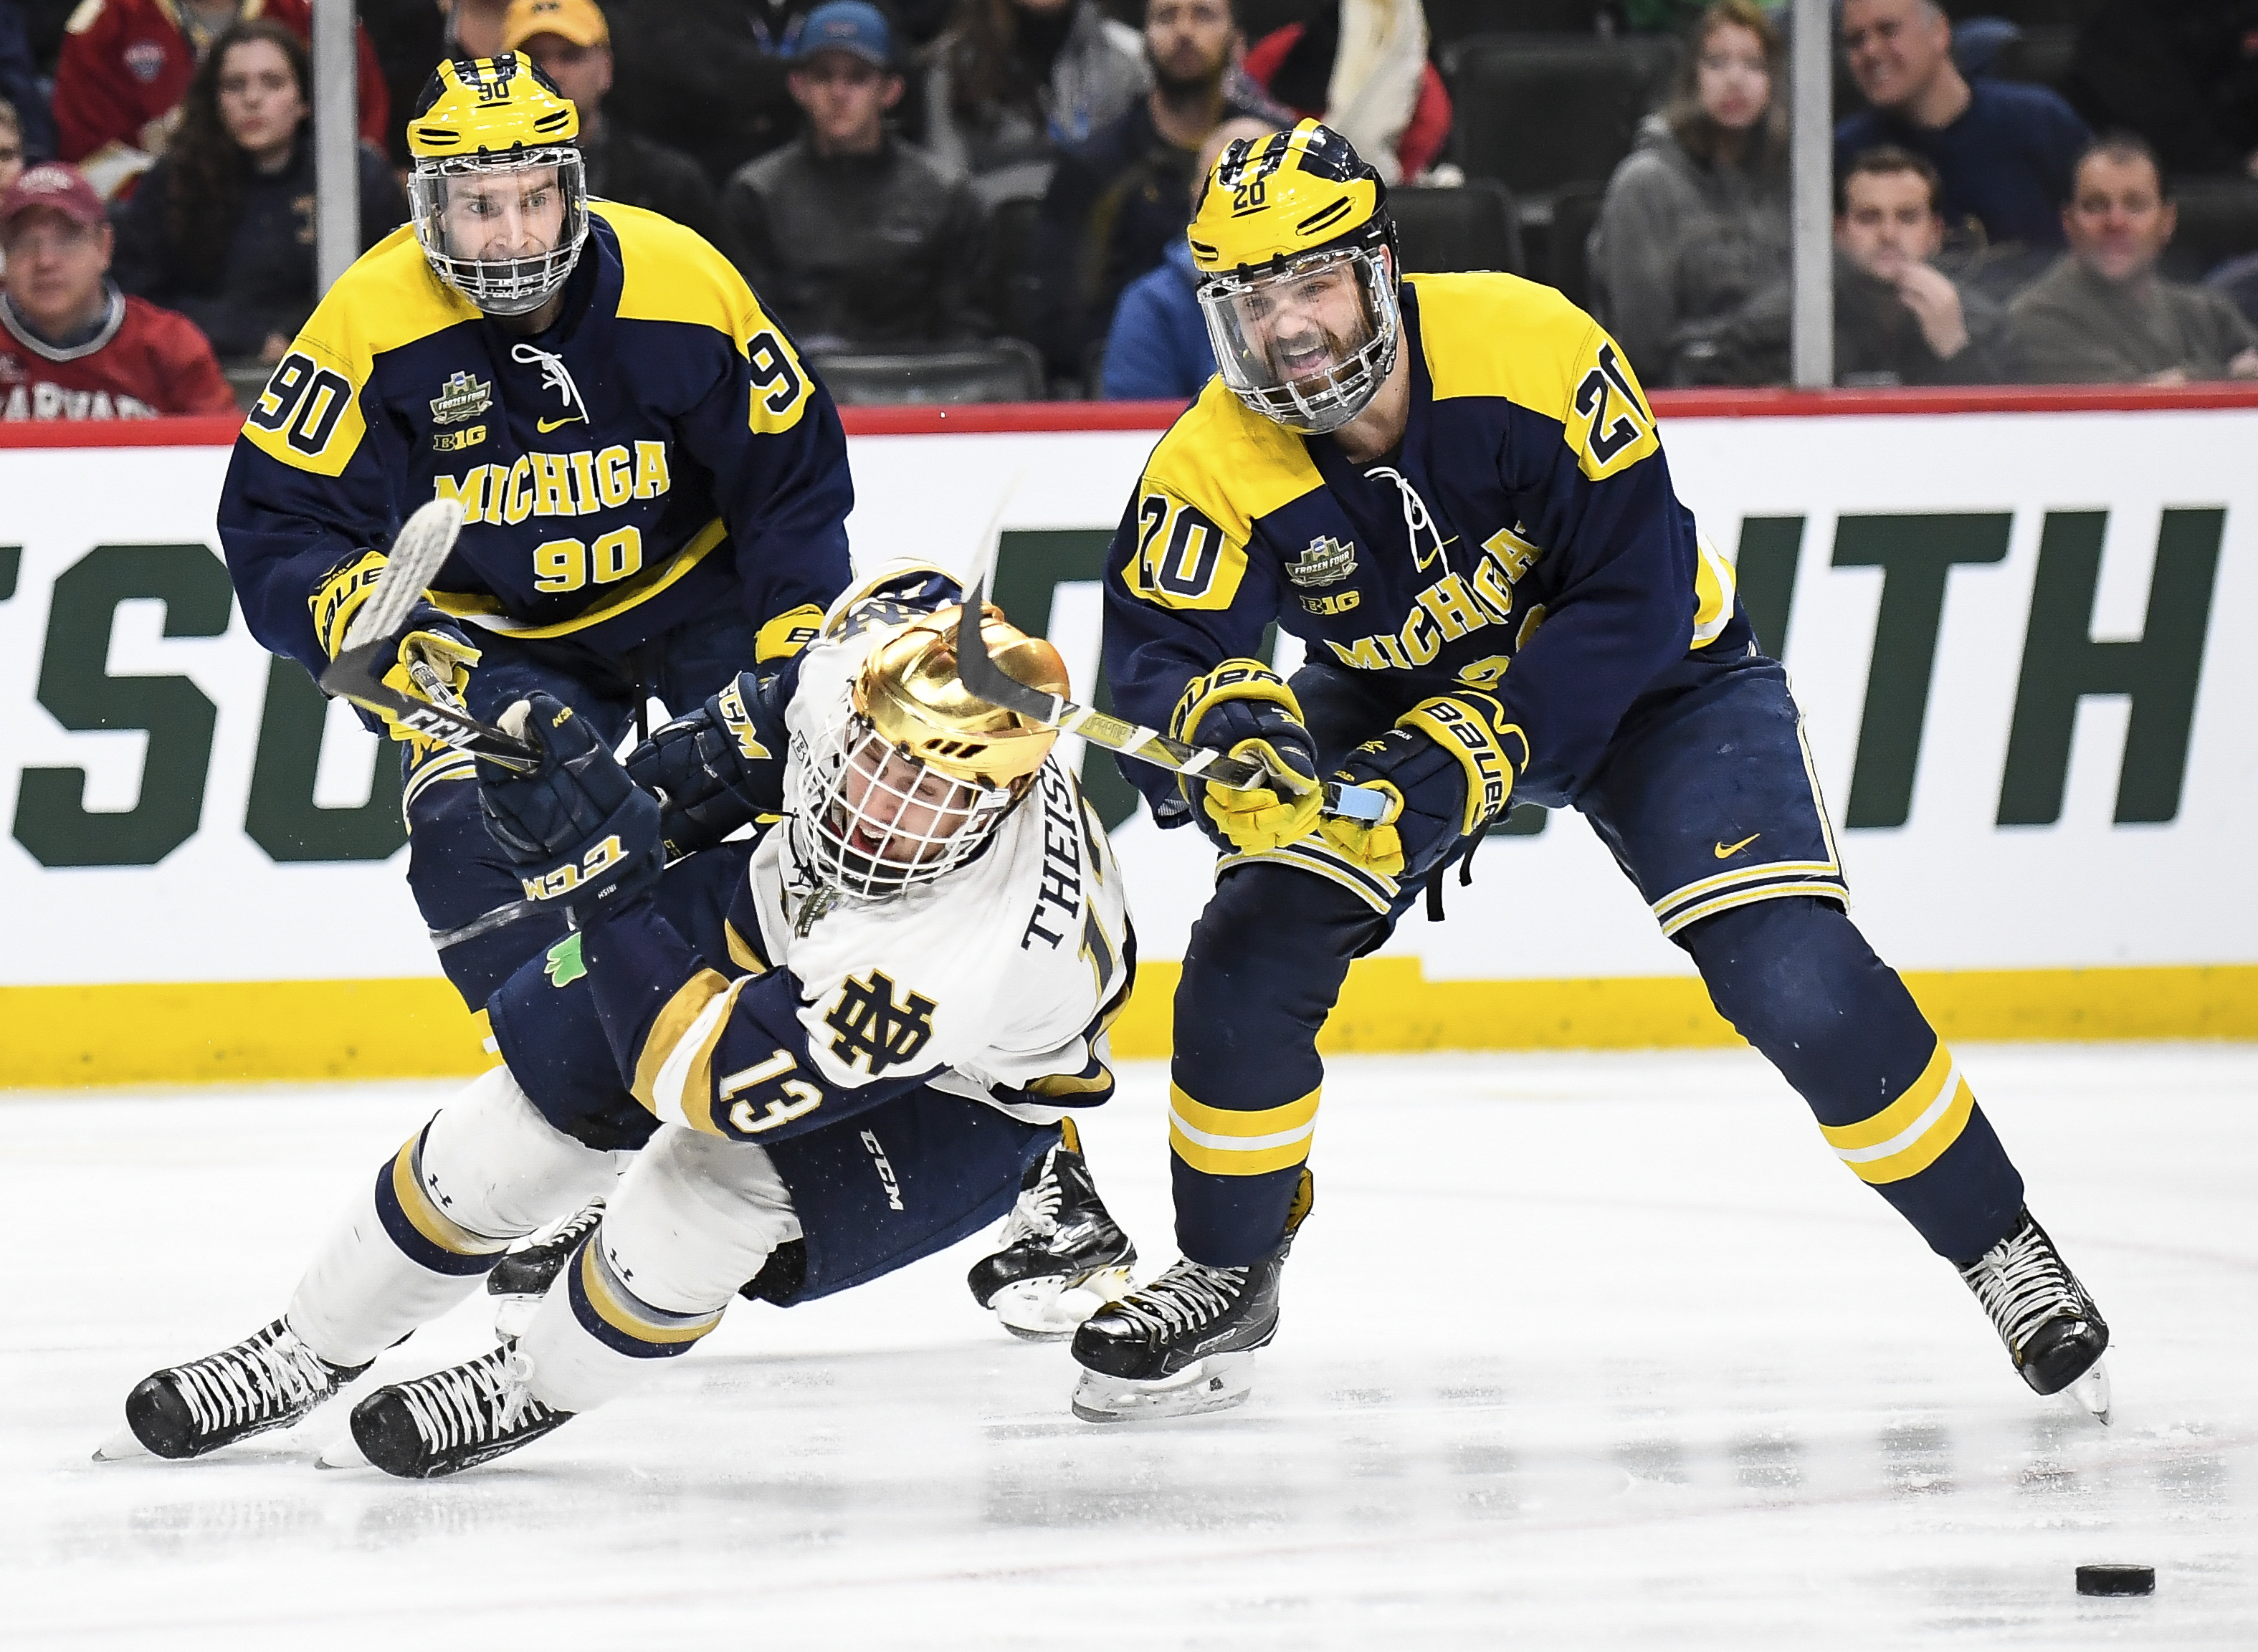 Michigan forward Cooper Marody (20) takes the skates out from under Notre Dame forward Colin Theisen (13), and is called for hooking during the first period of a semifinal in the NCAA men's Frozen Four hockey tournament Thursday, April 5, 2018, in St. Paul, Minn. (Aaron Lavinsky/Star Tribune via AP)